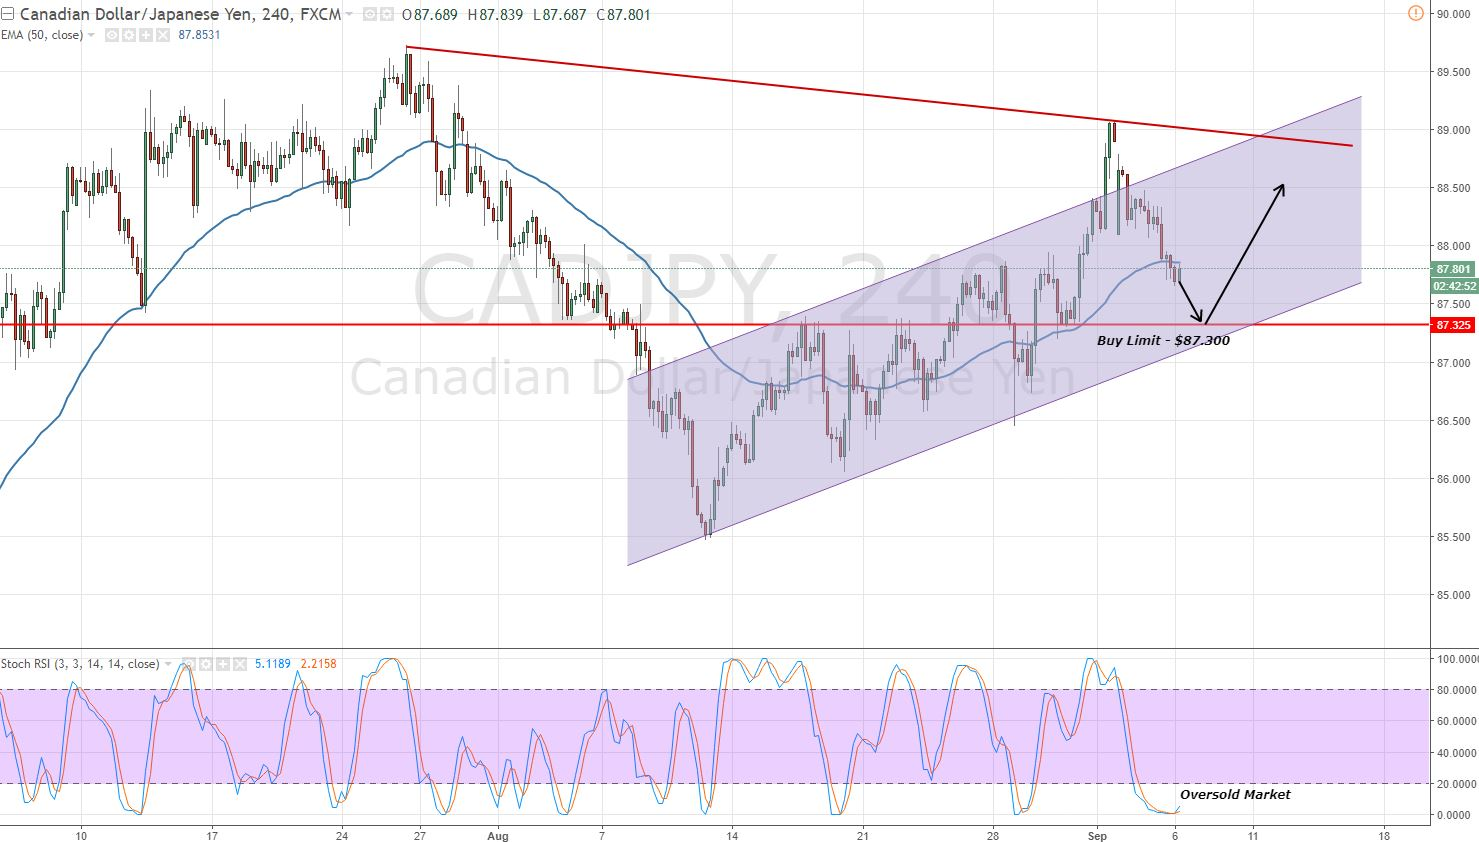 CADJPY - Bullish Channel & Potential Entry